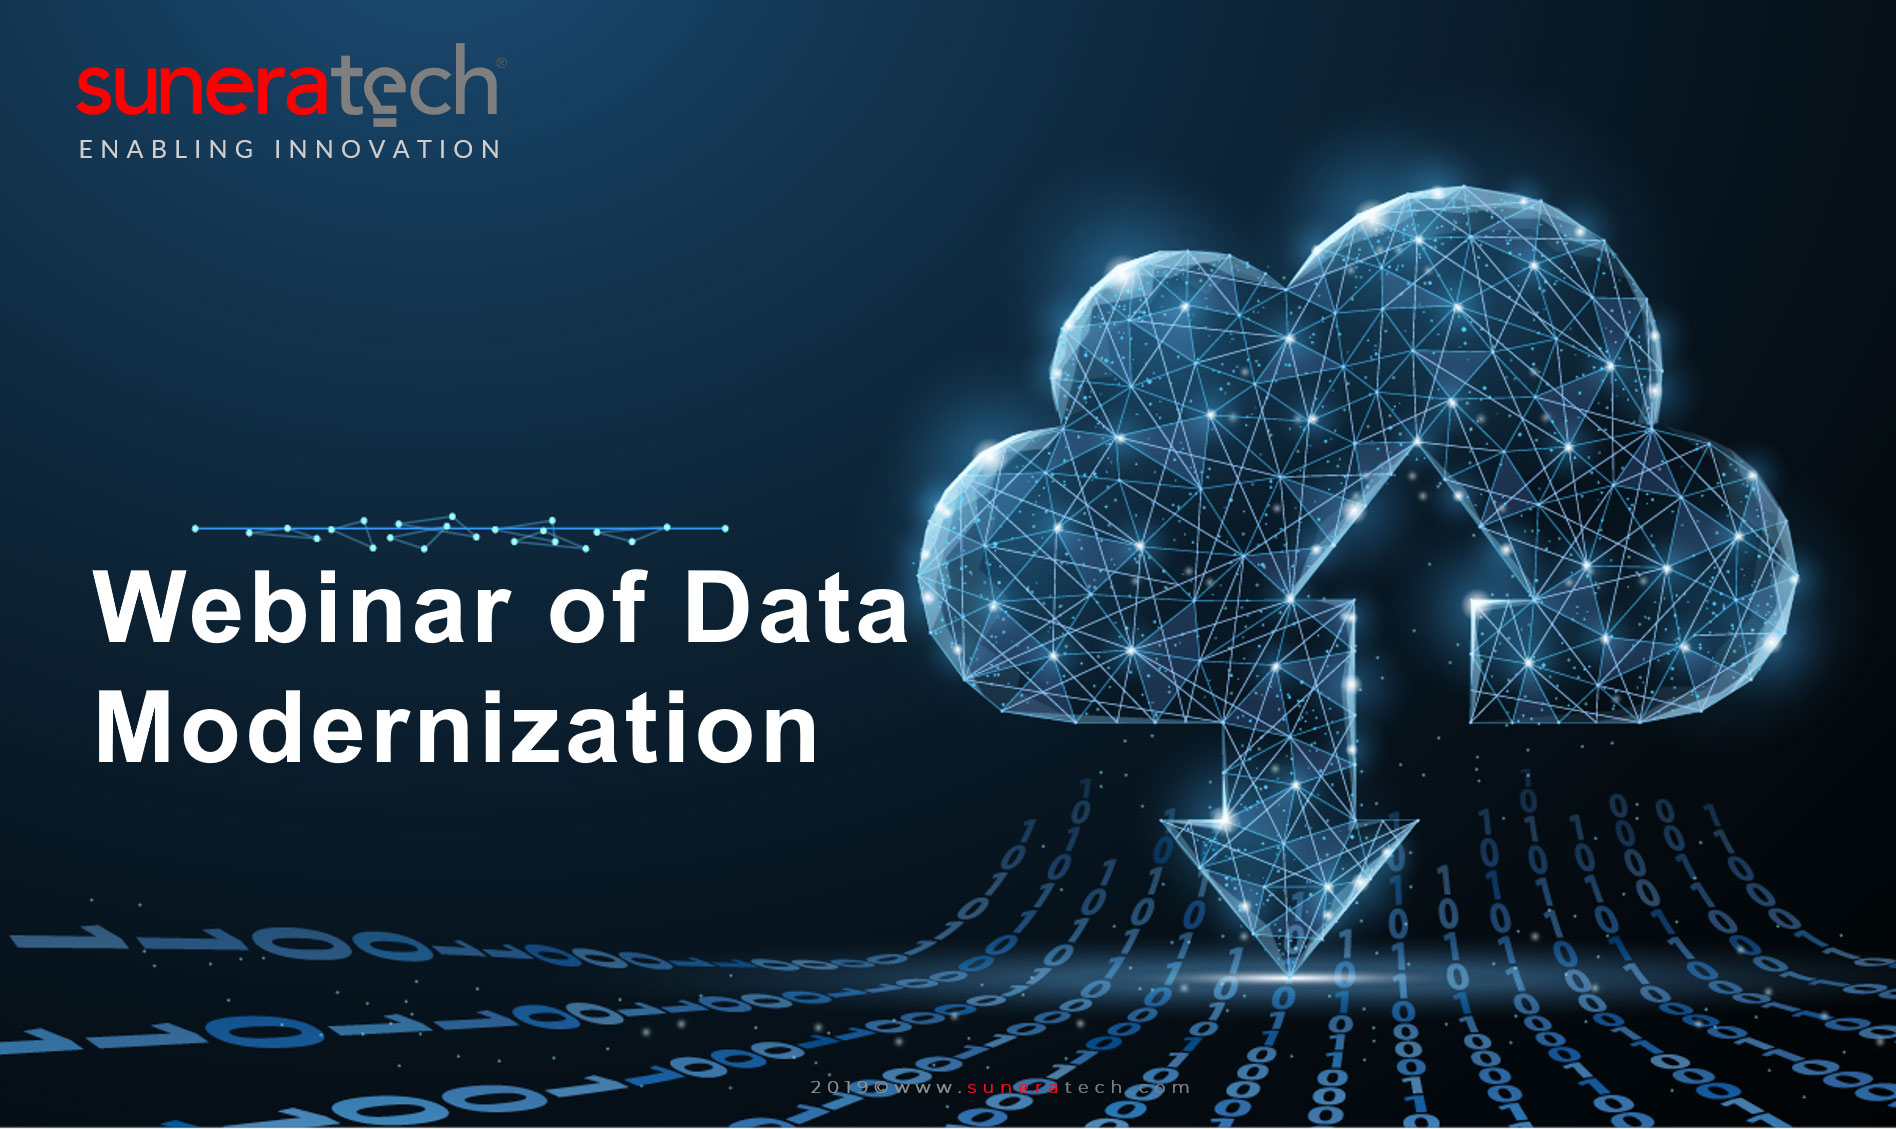 Webinar: 5 Key Elements of Data Modernization: How Organizations needs to approach it?